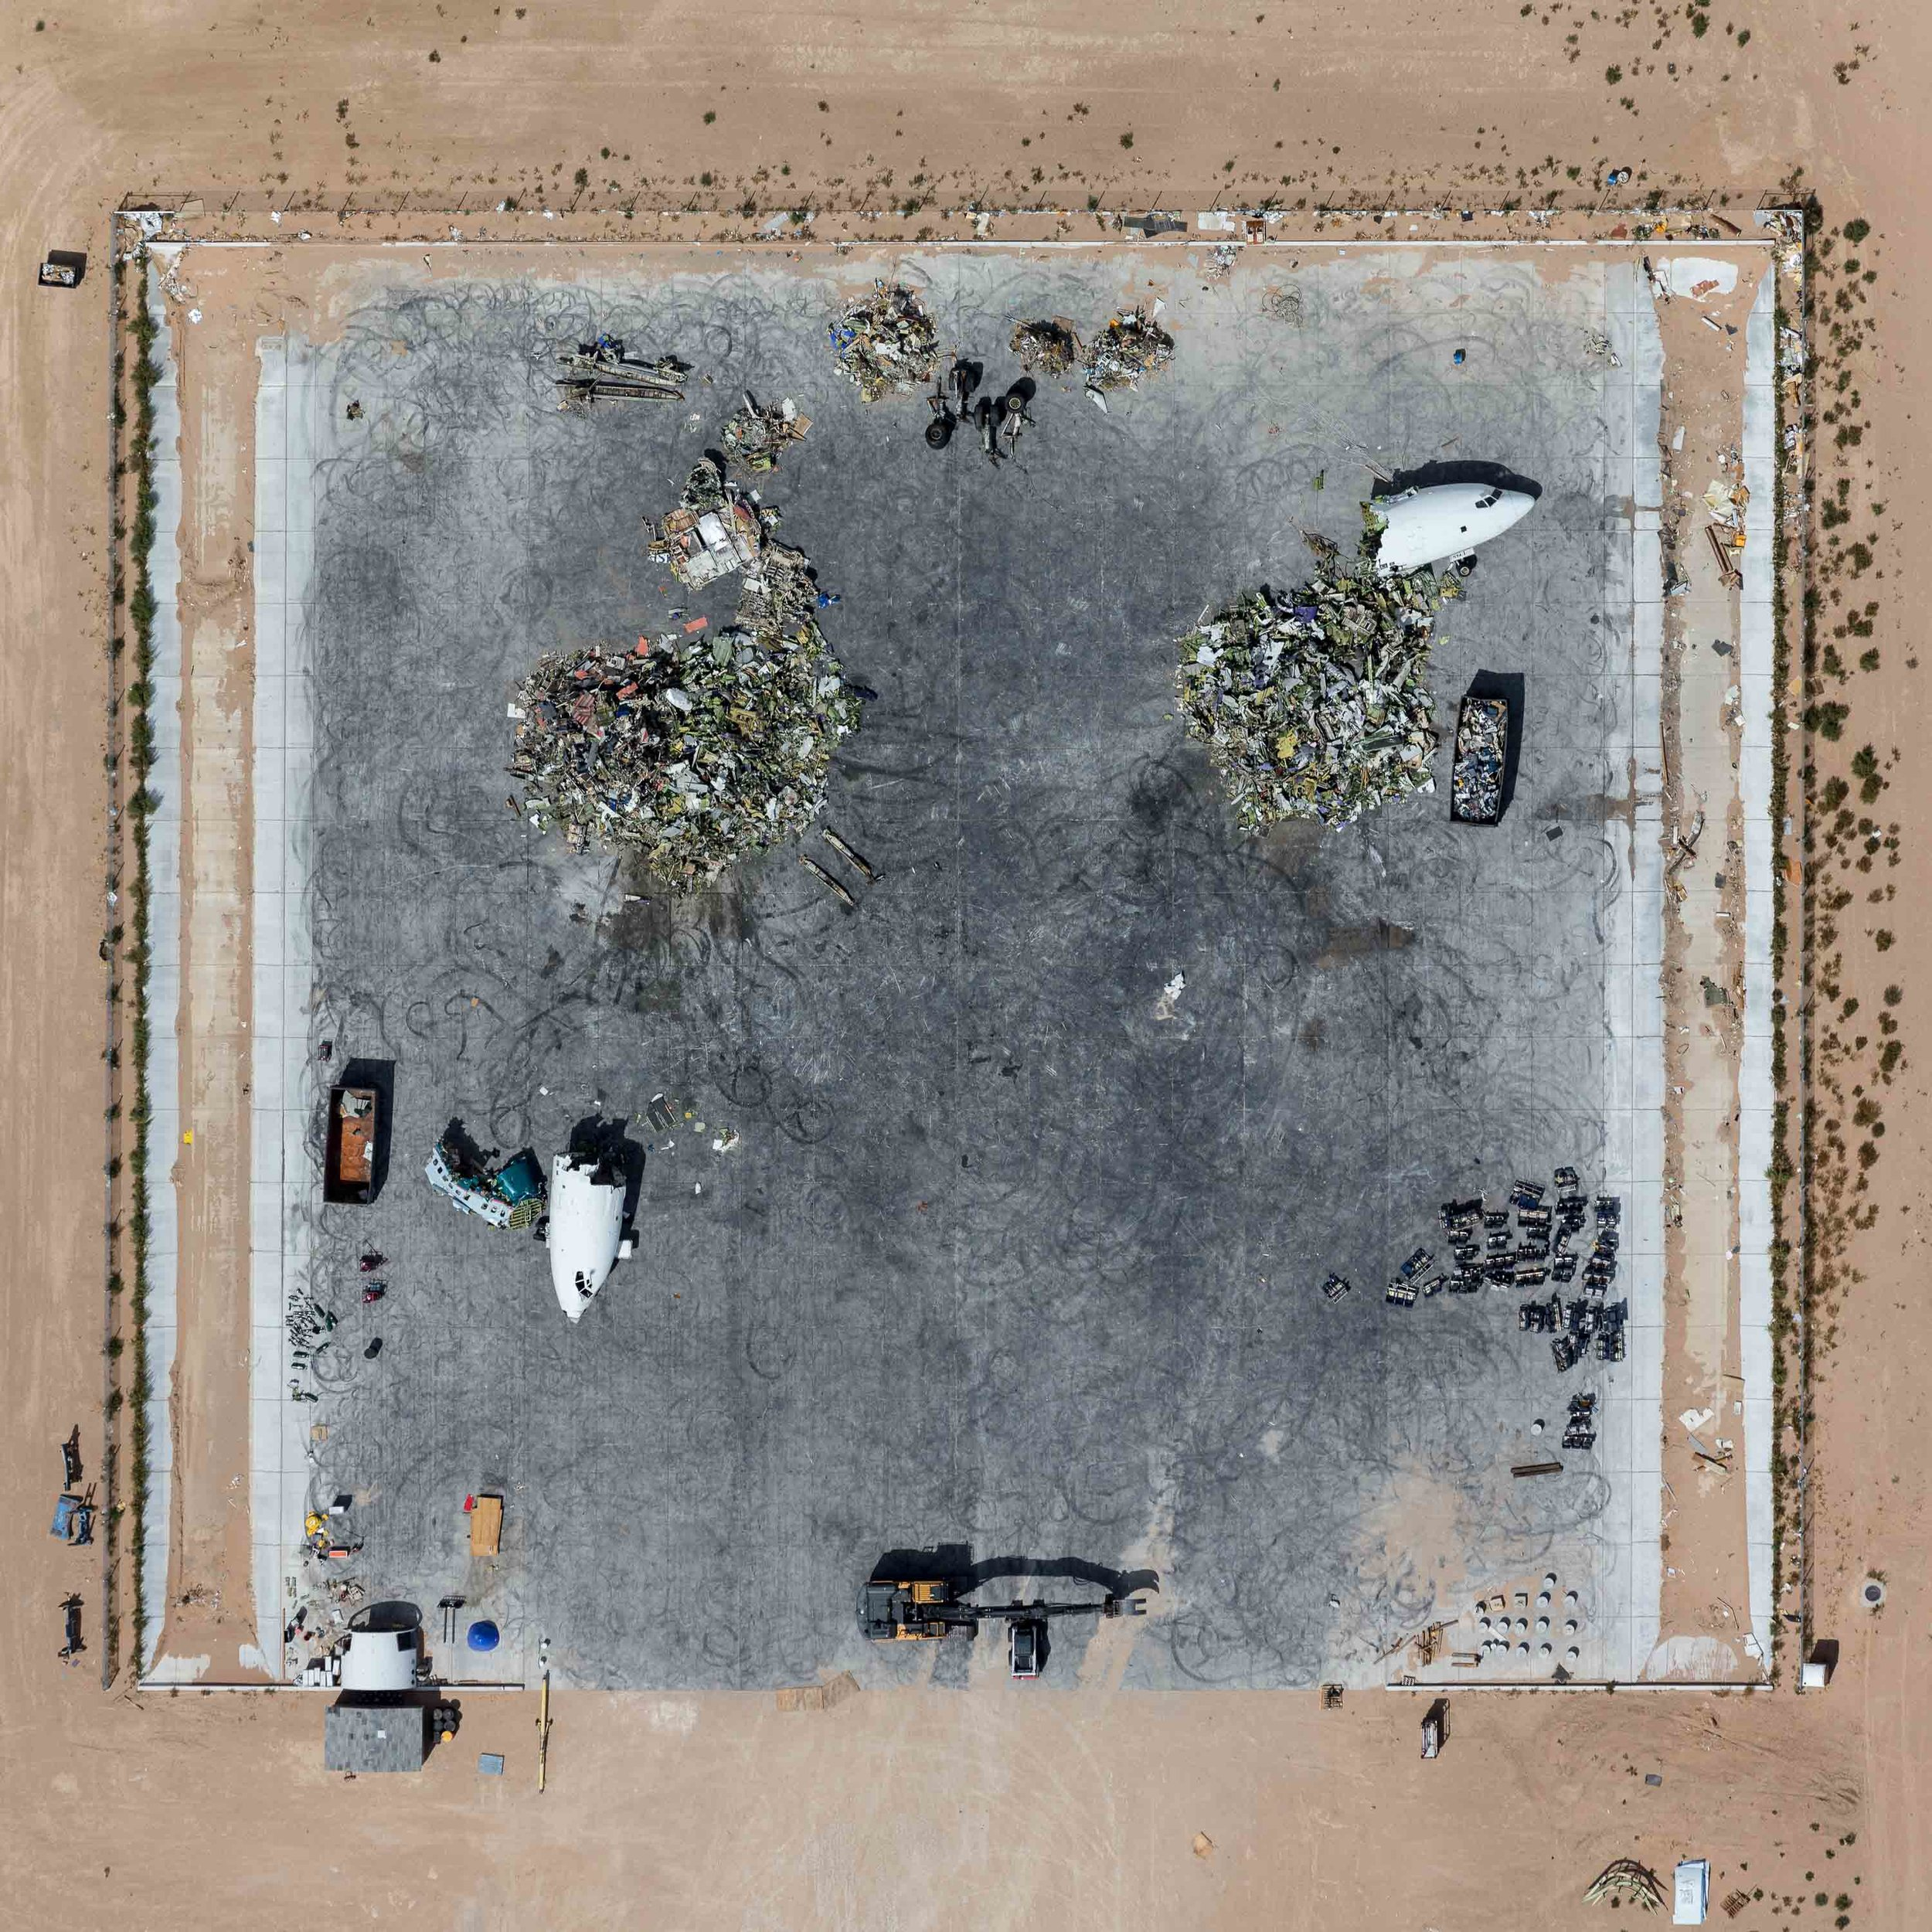 mike-kelley-boneyard-aerial-photography.jpg